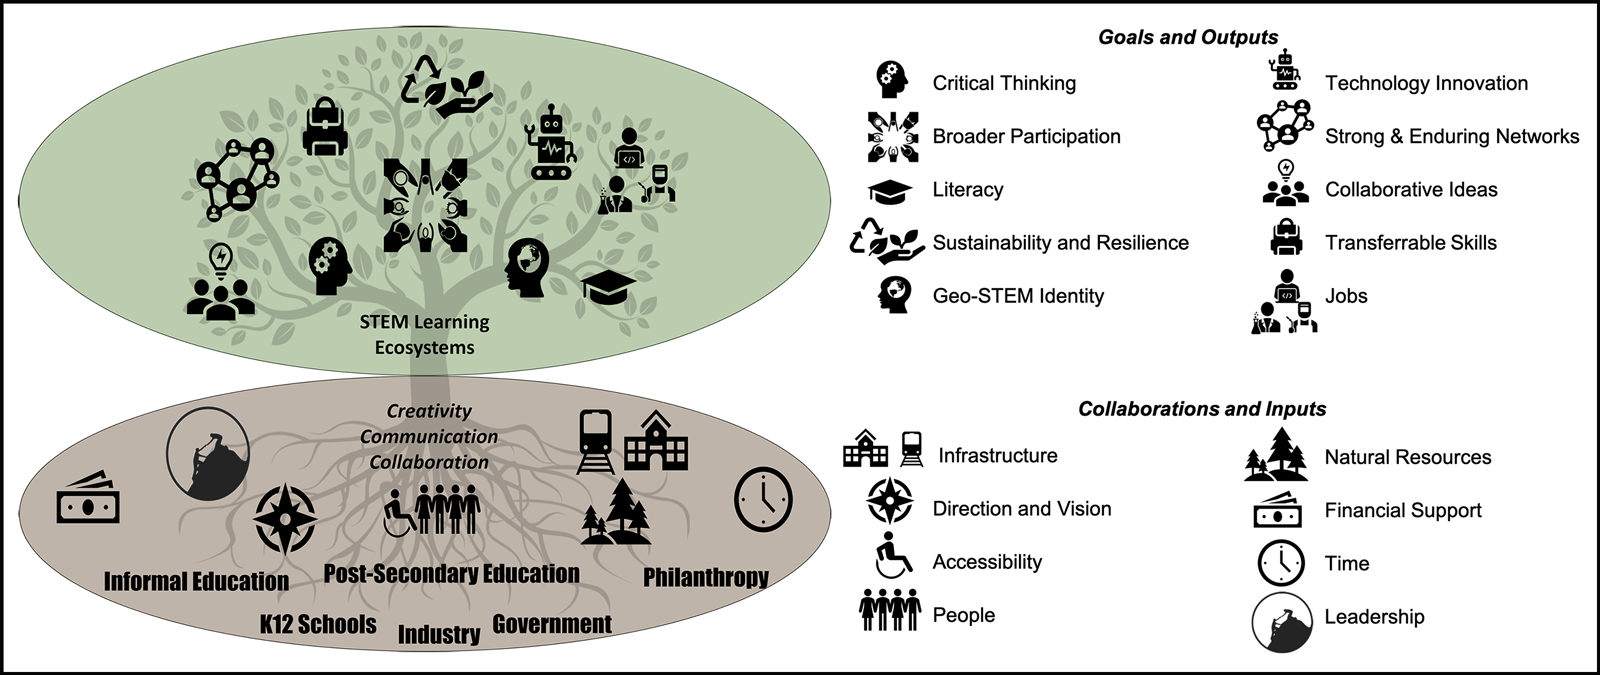 Diagram illustrating a conceptual model of STEM learning ecosystems, including collaborating groups as well as goals and outputs